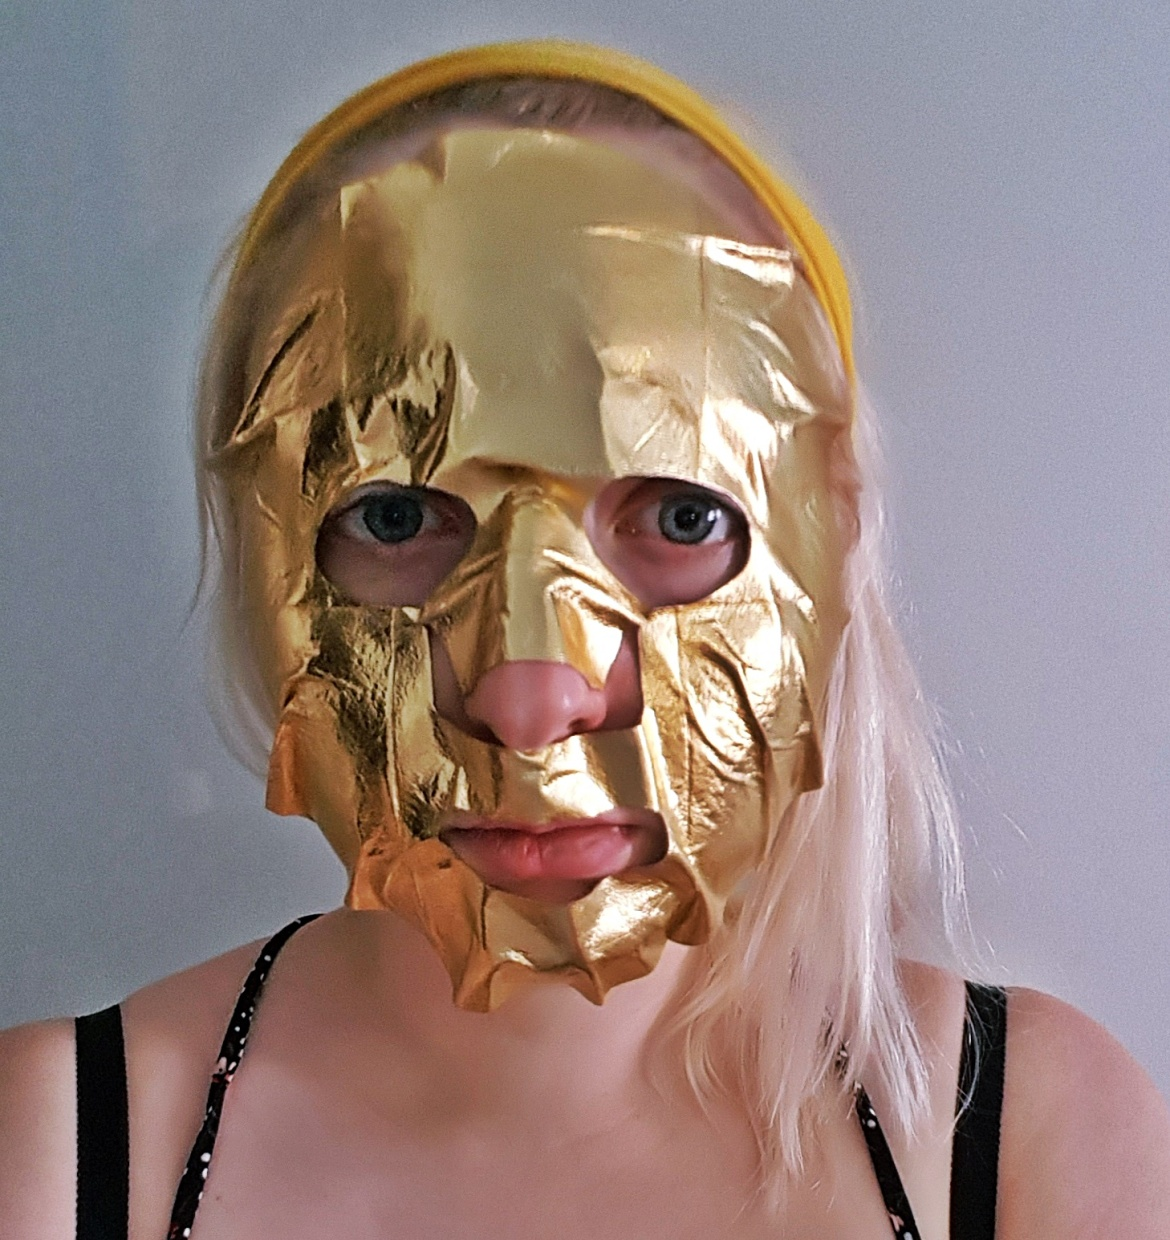 Gilt Tripper face mask by Nails Inc - Tune in with Joy the Store, Leeds shop review by BeckyBecky Blogs